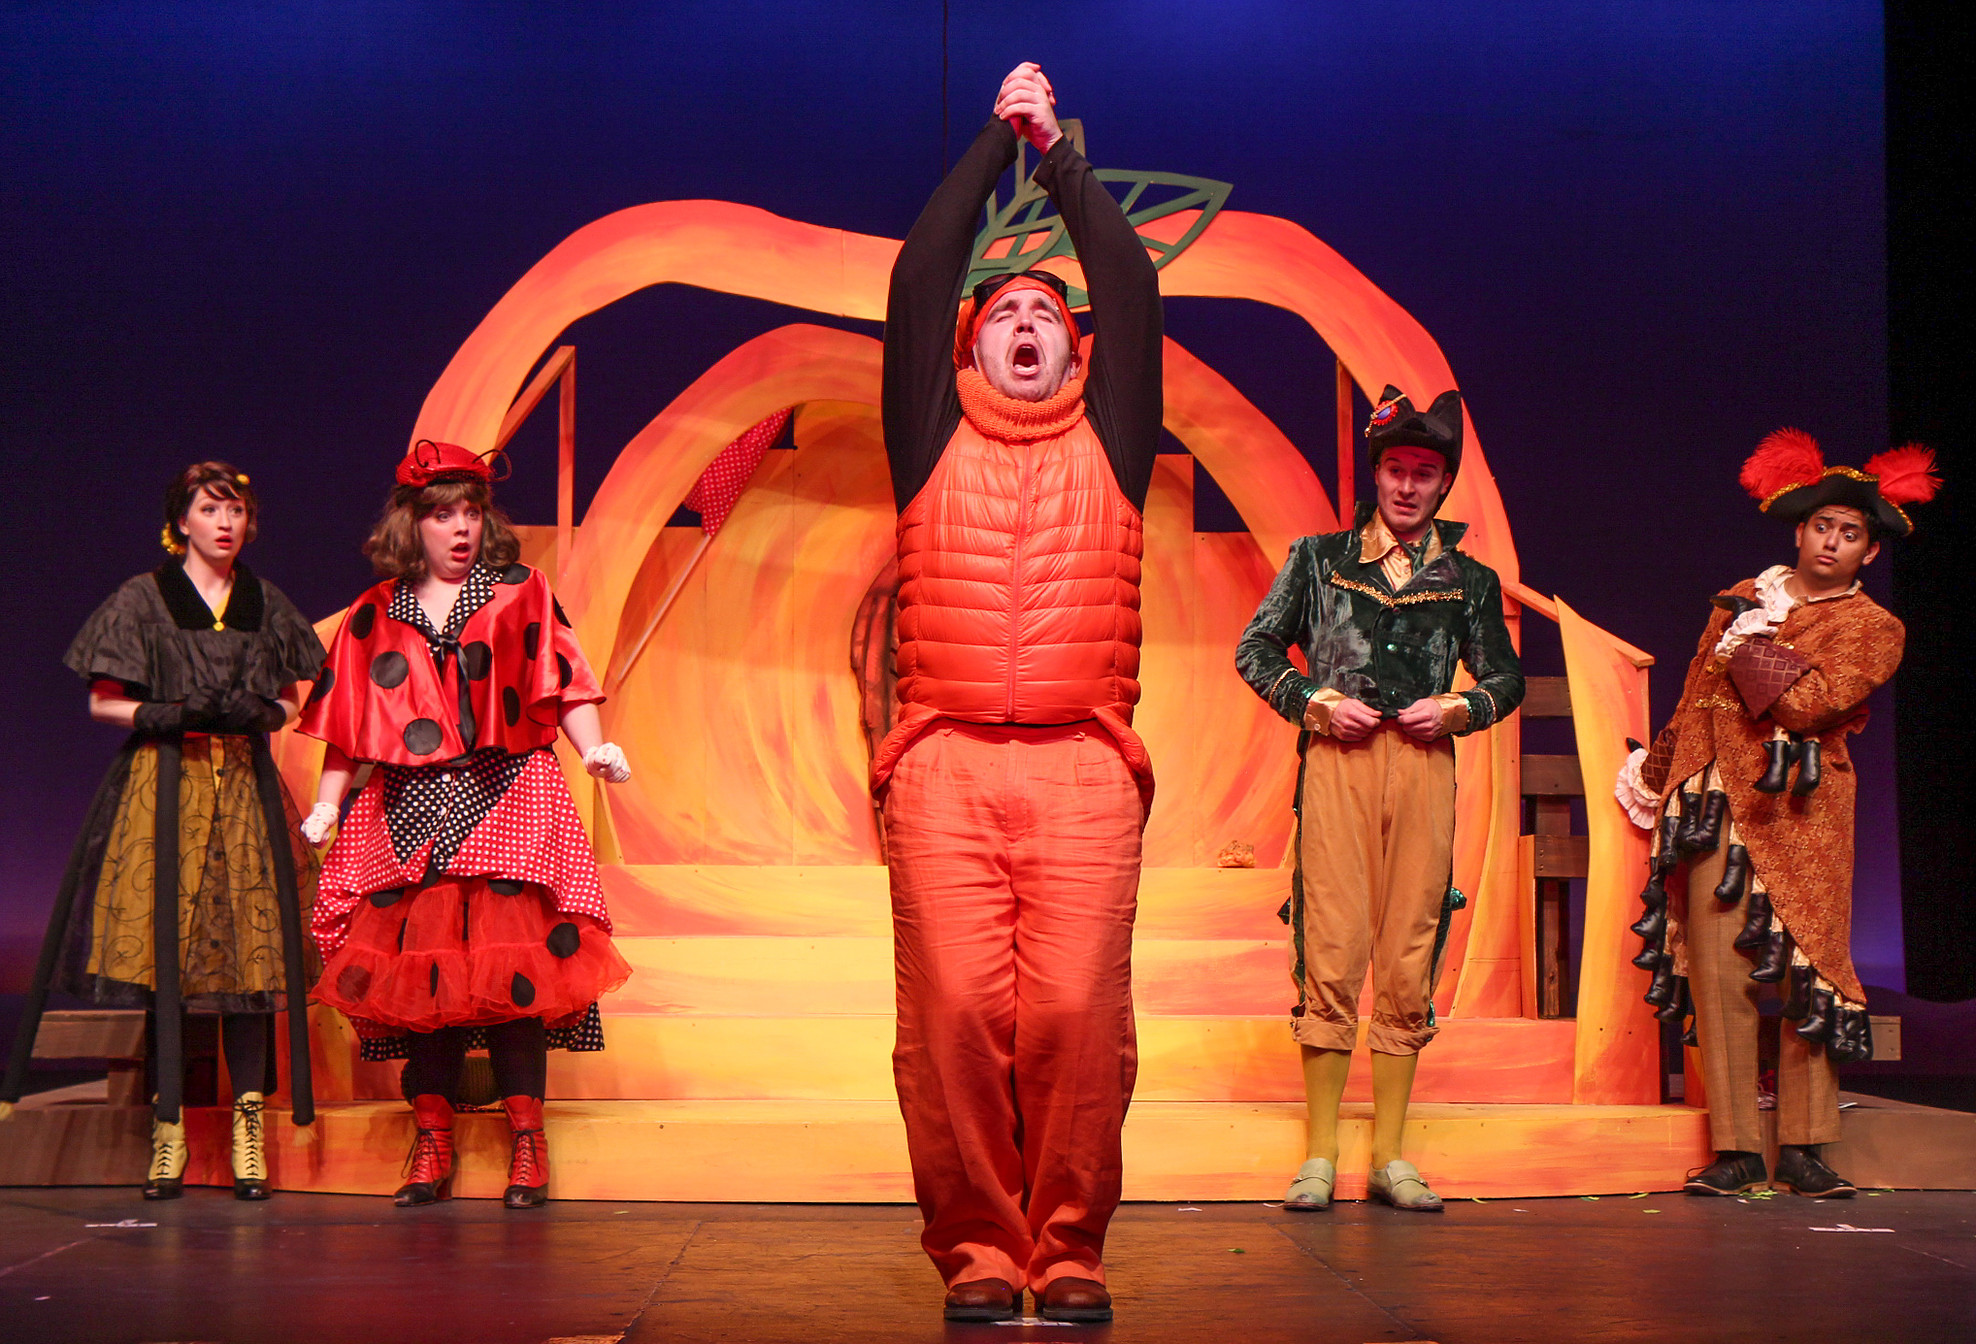 photo by Beth Curley/Julian Wiles   James and the Giant Peach , 2017  playing Earthworm